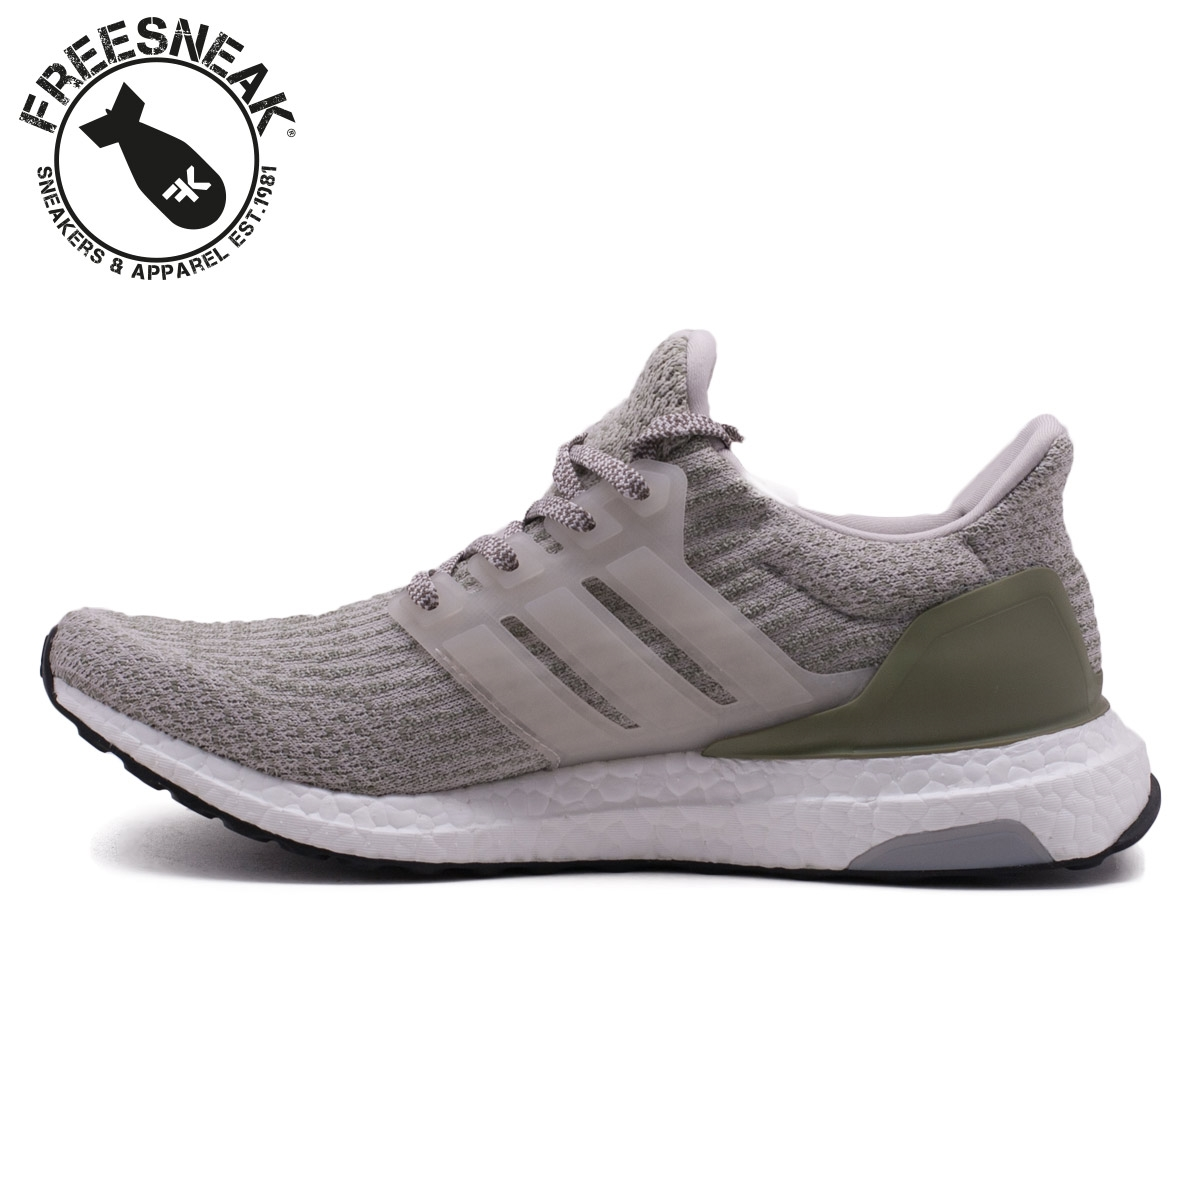 Adidas Ultra Boost 3.0 PK LTD 'Trace Cargo' UK 11.5 US 12 EUR 46 2